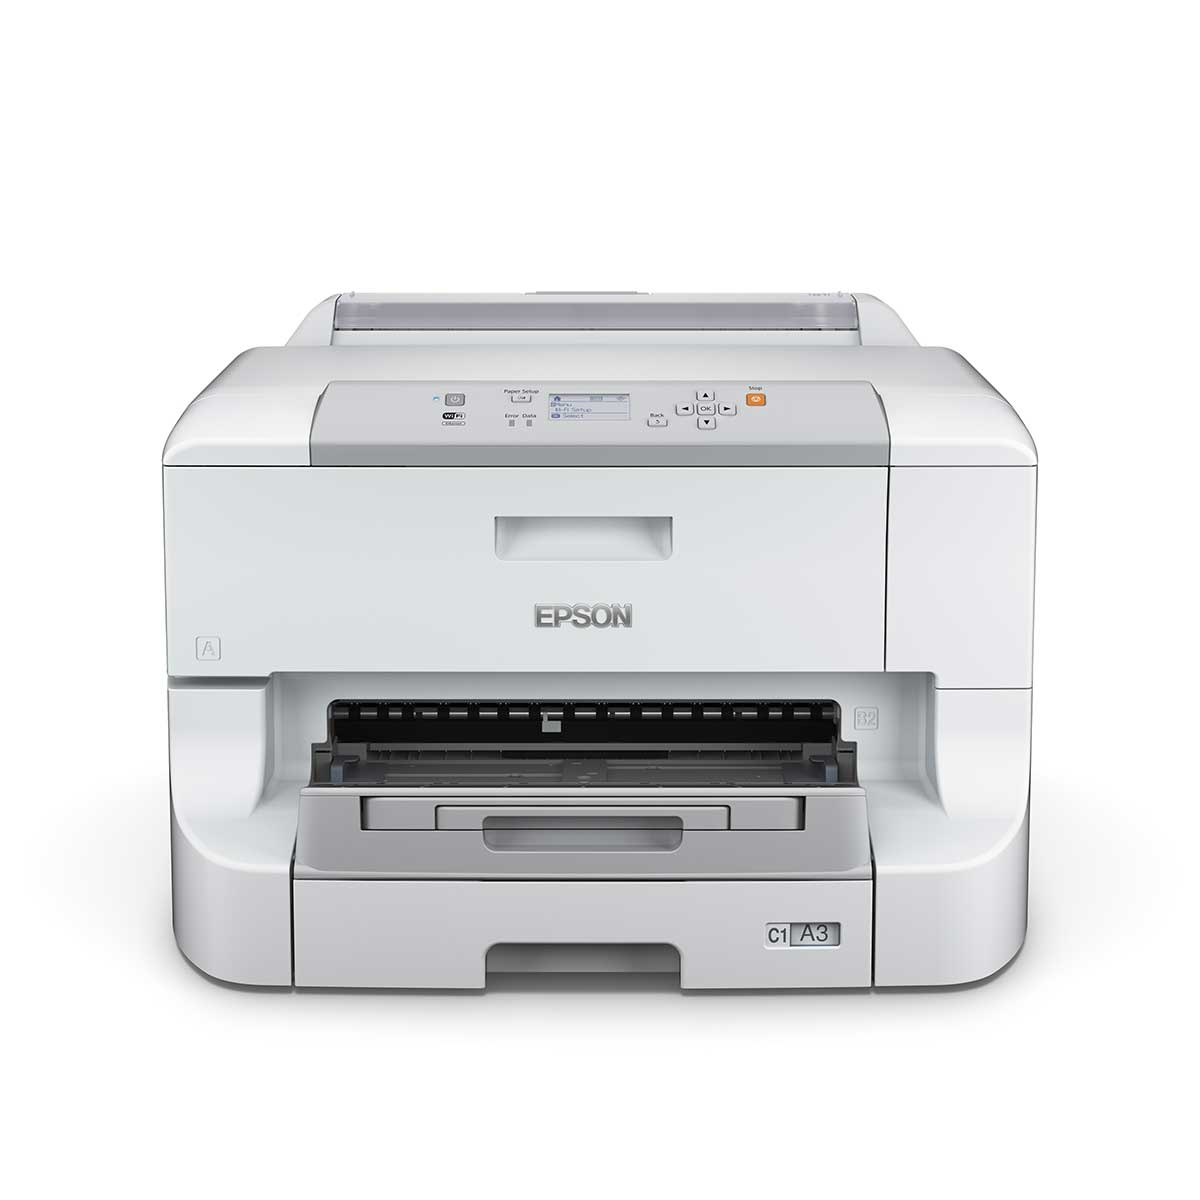 Epson WorkForce Pro WF-8090DW A3 Inkjet Printer